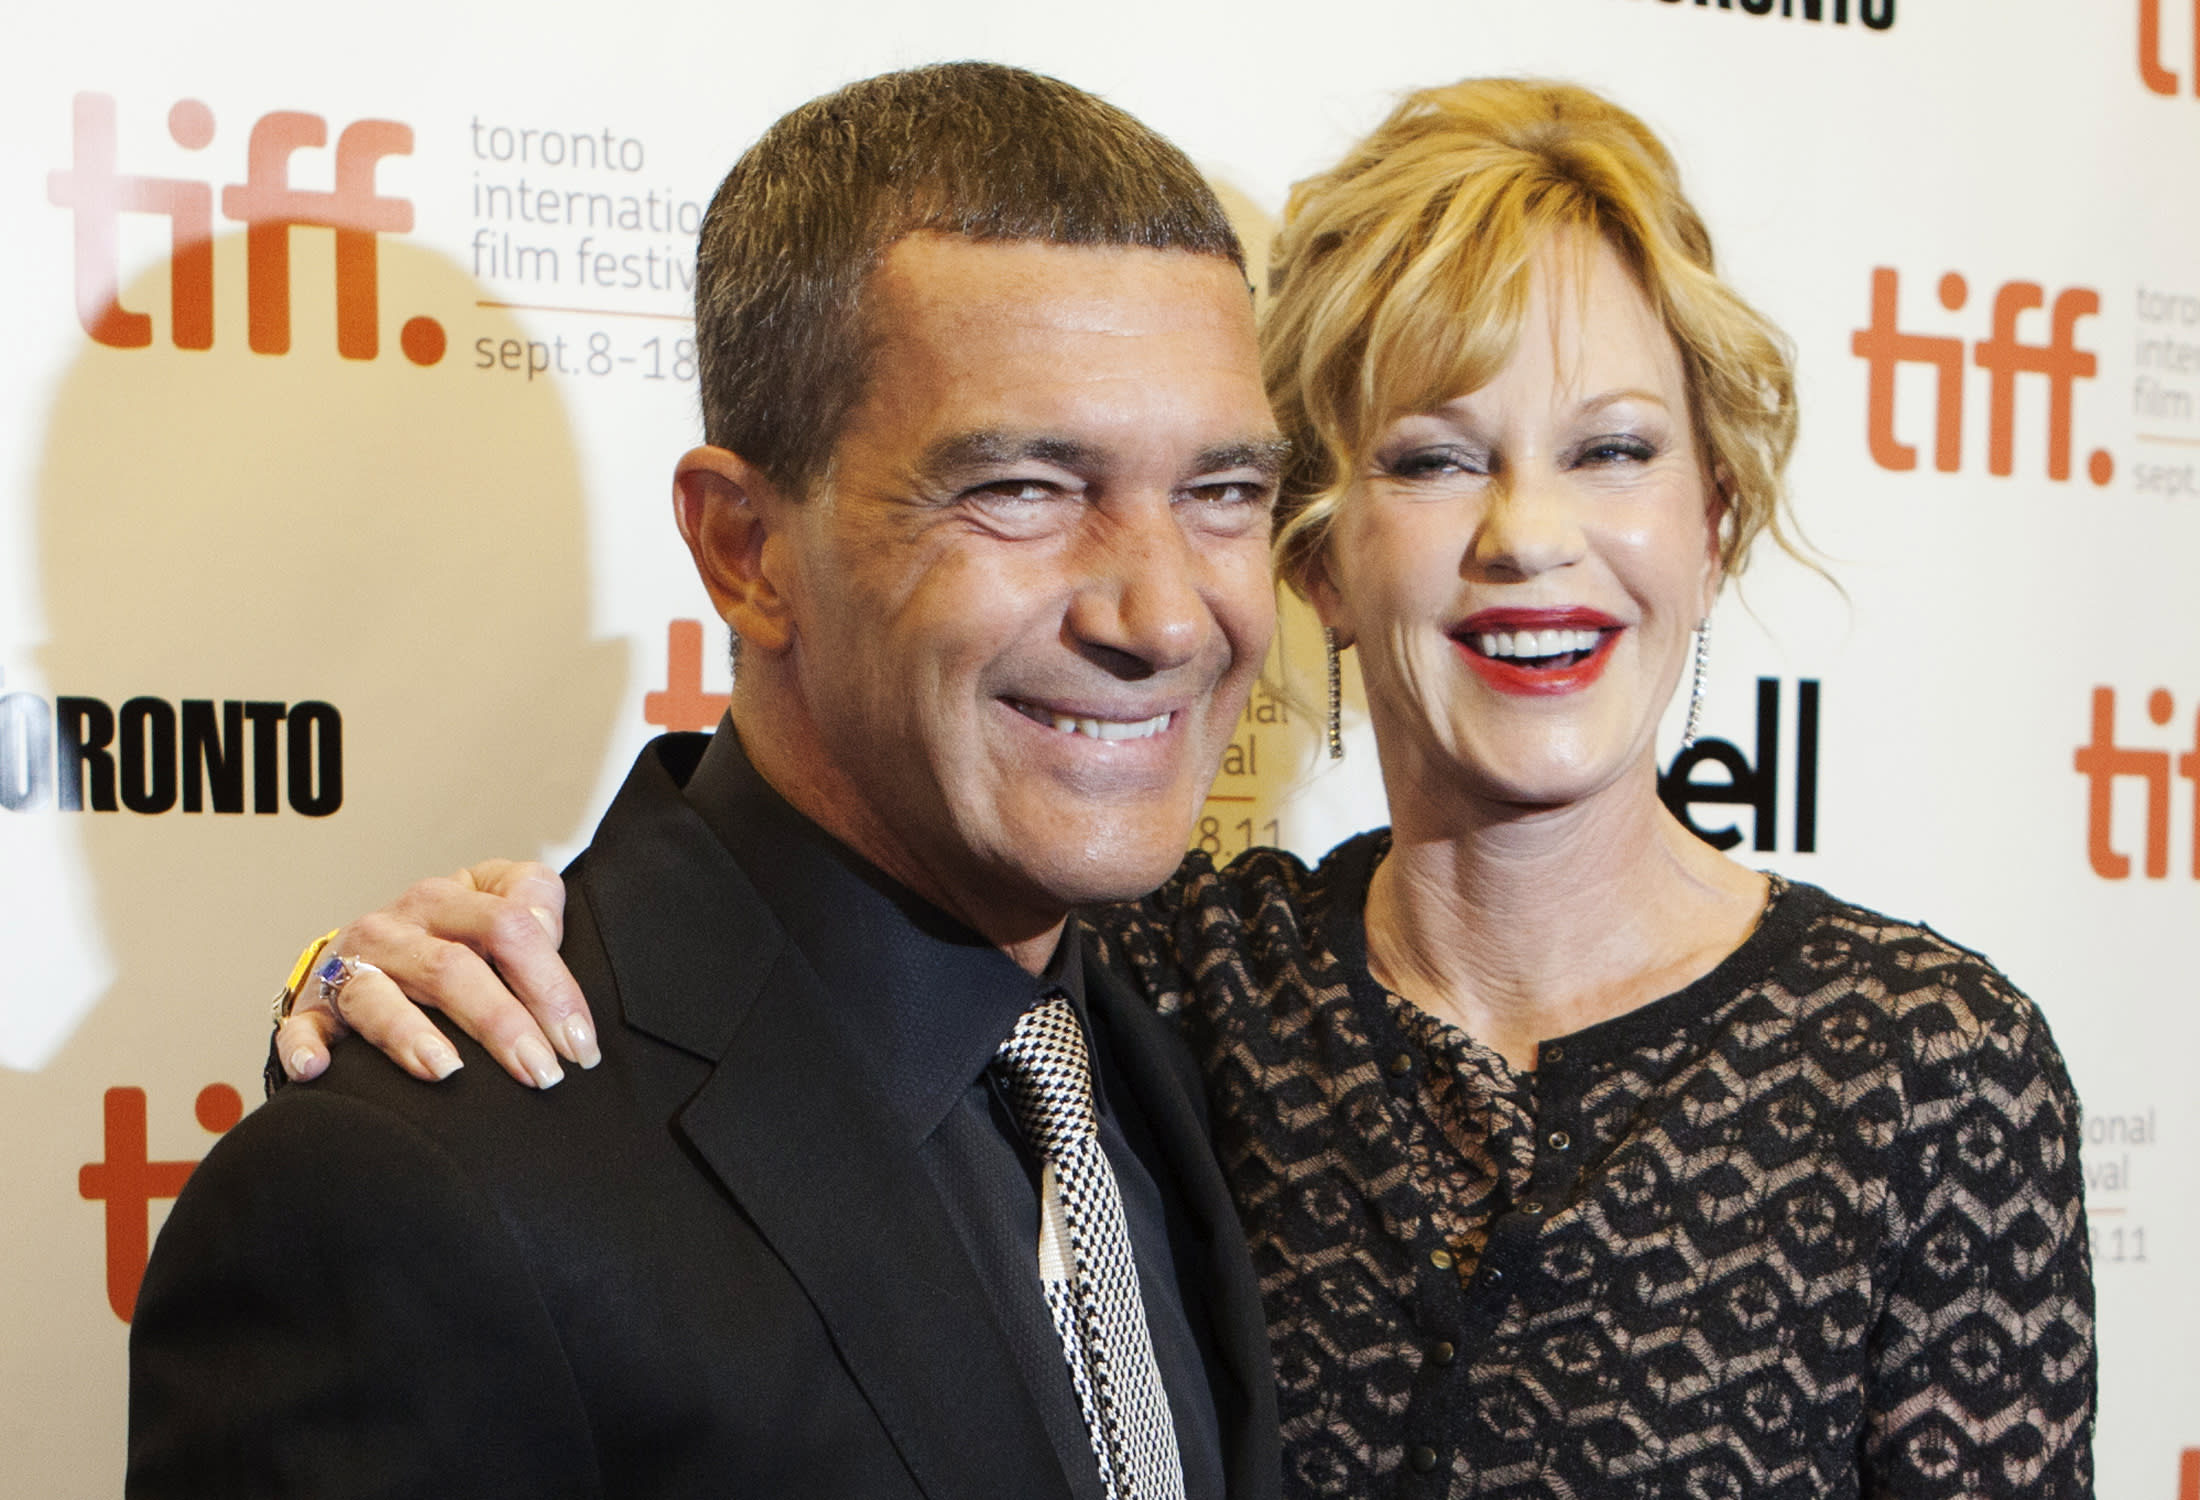 Antonio Banderas says he's still close with 'best friend' Melanie Griffith: 'She is my family'